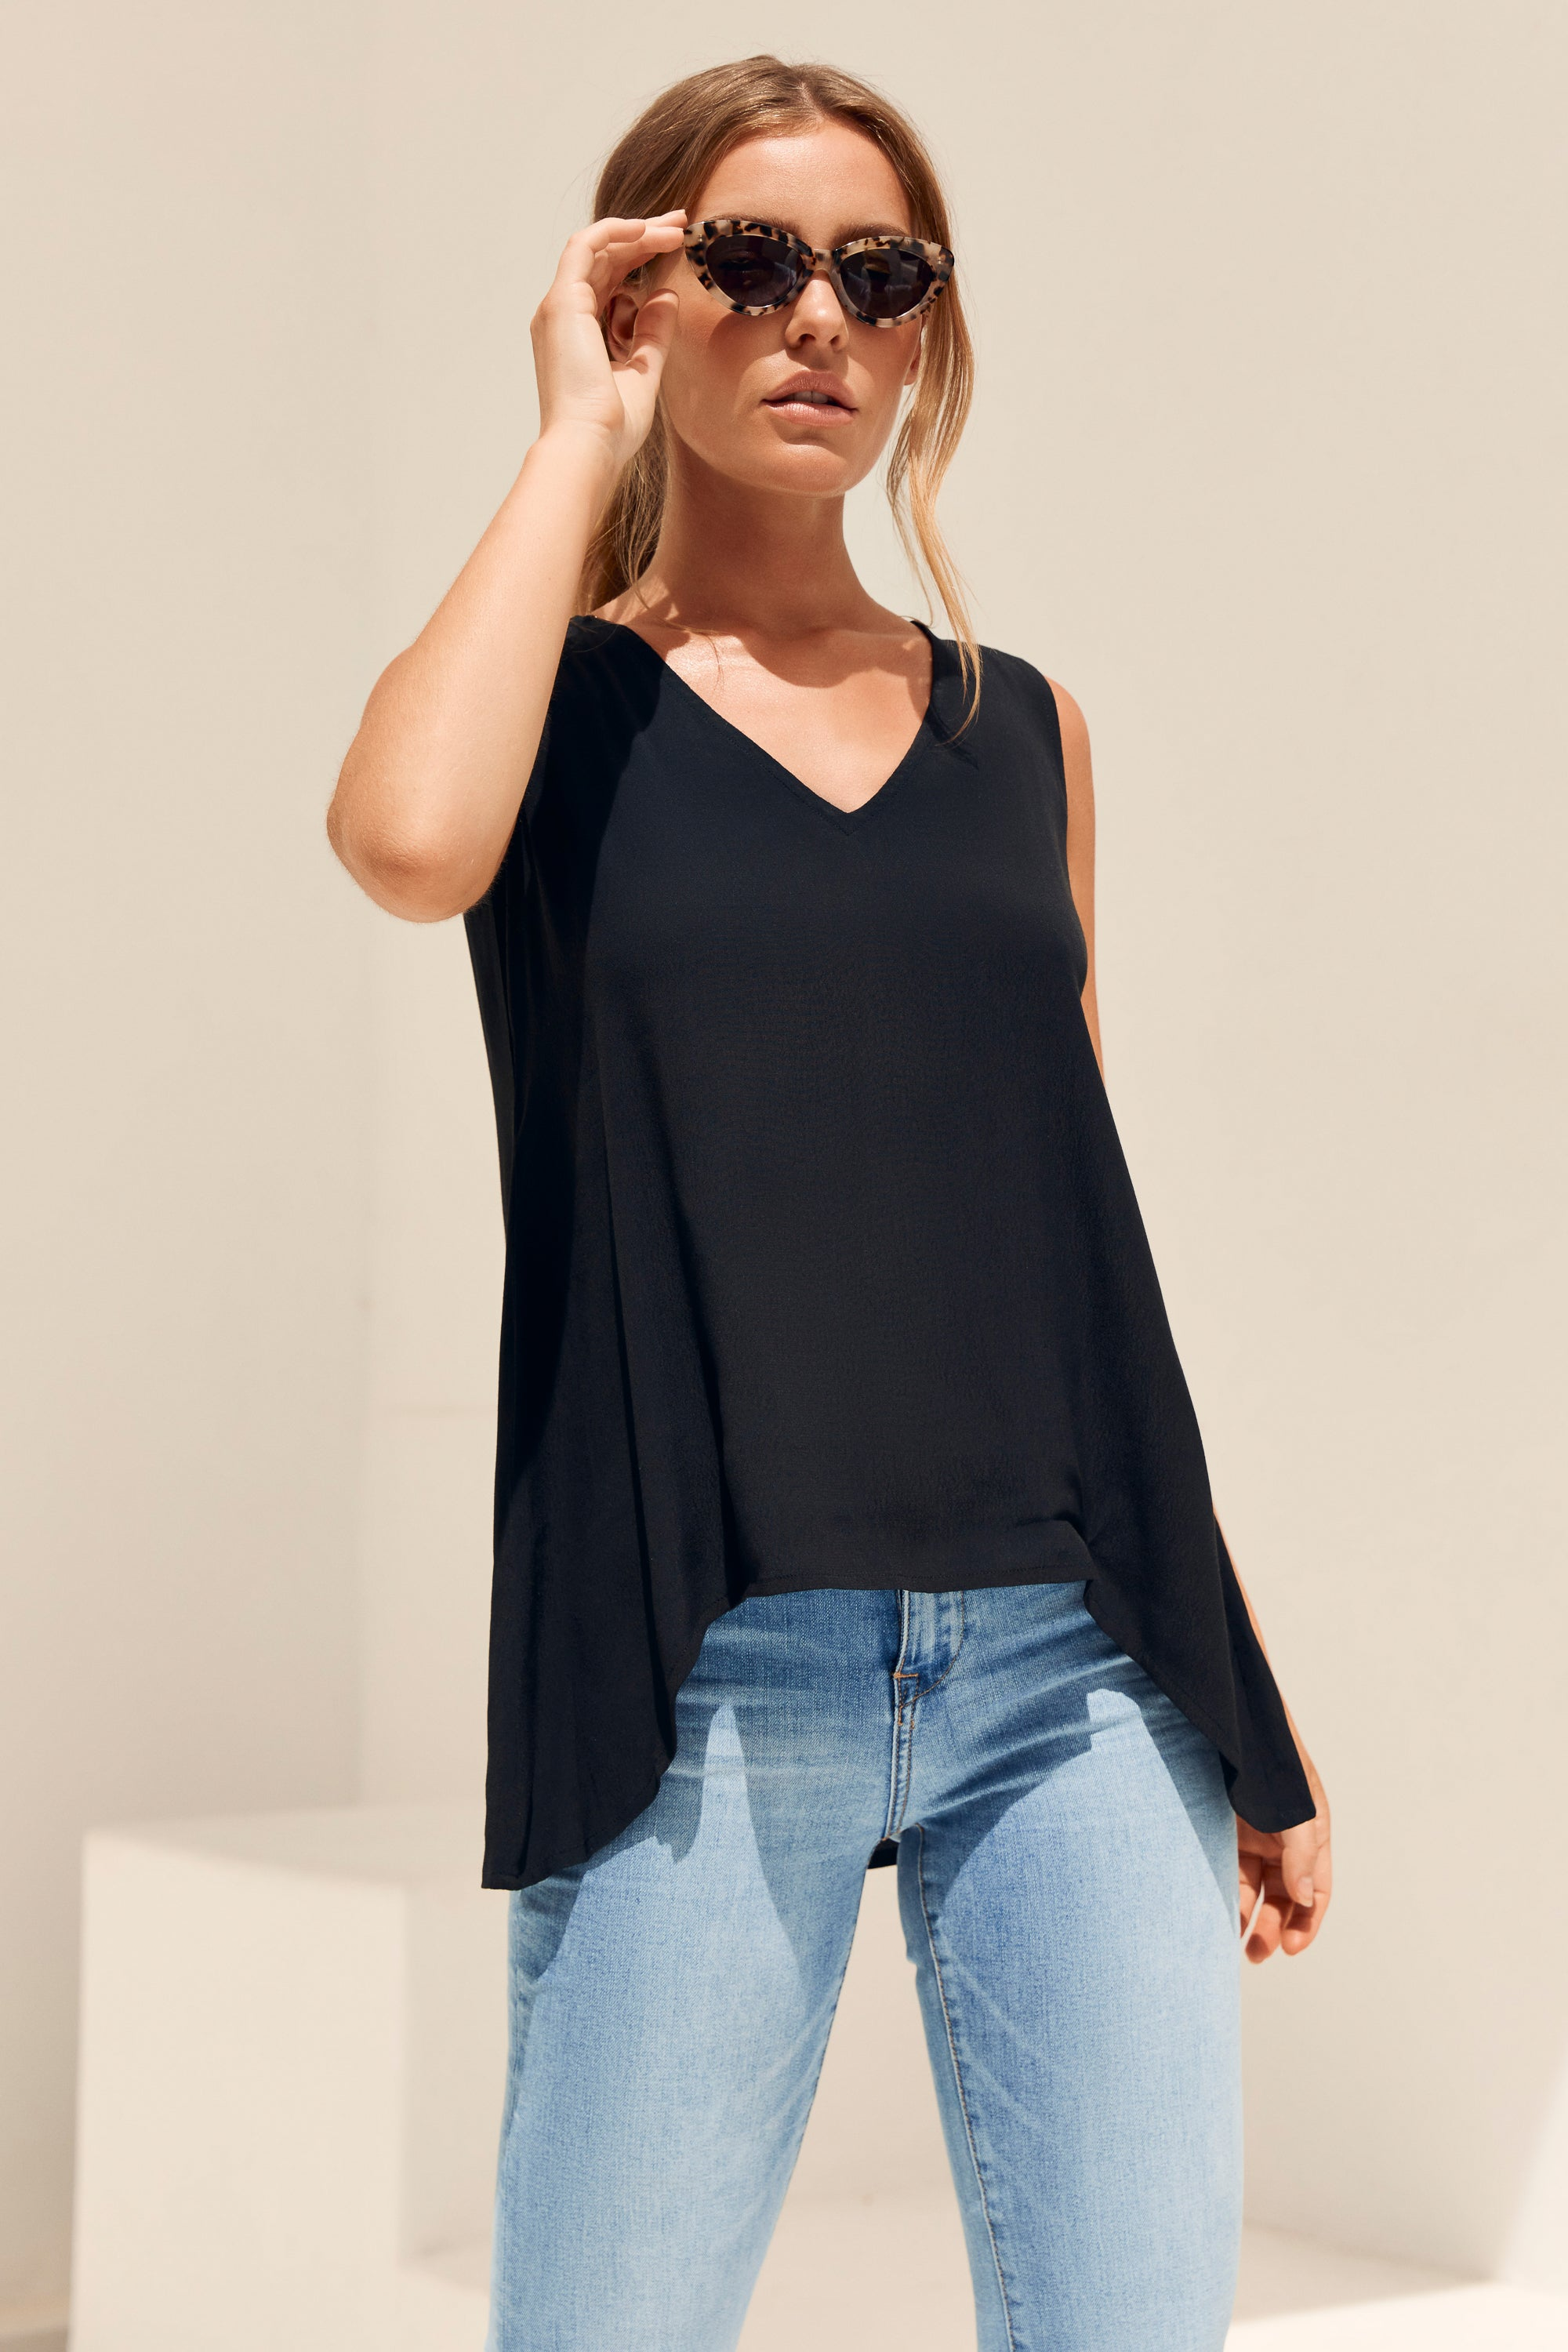 Milly Top In Black